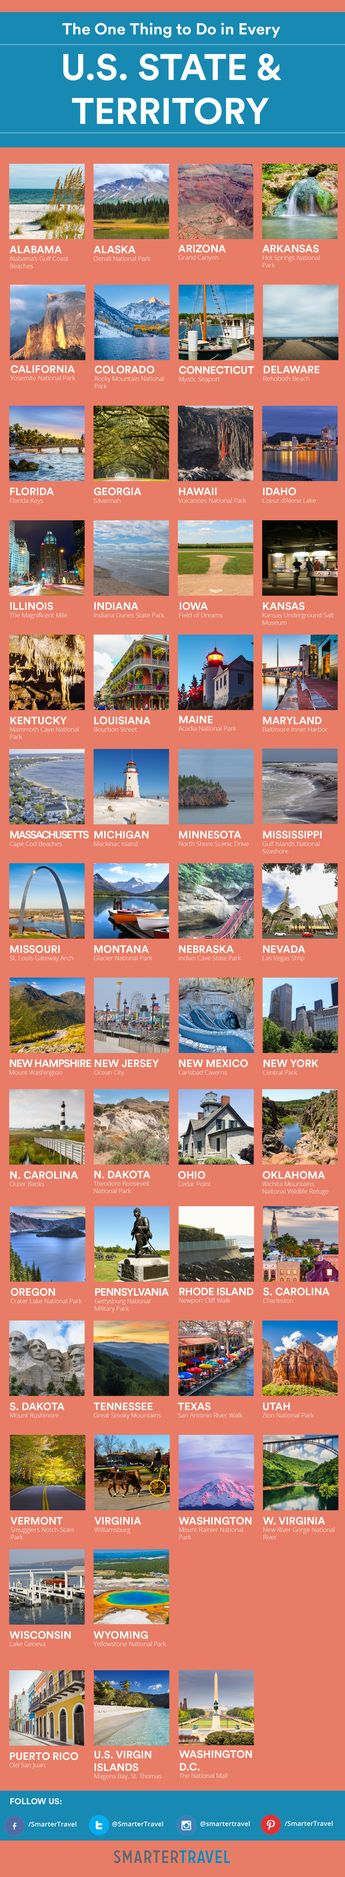 50 States One Thing to Do